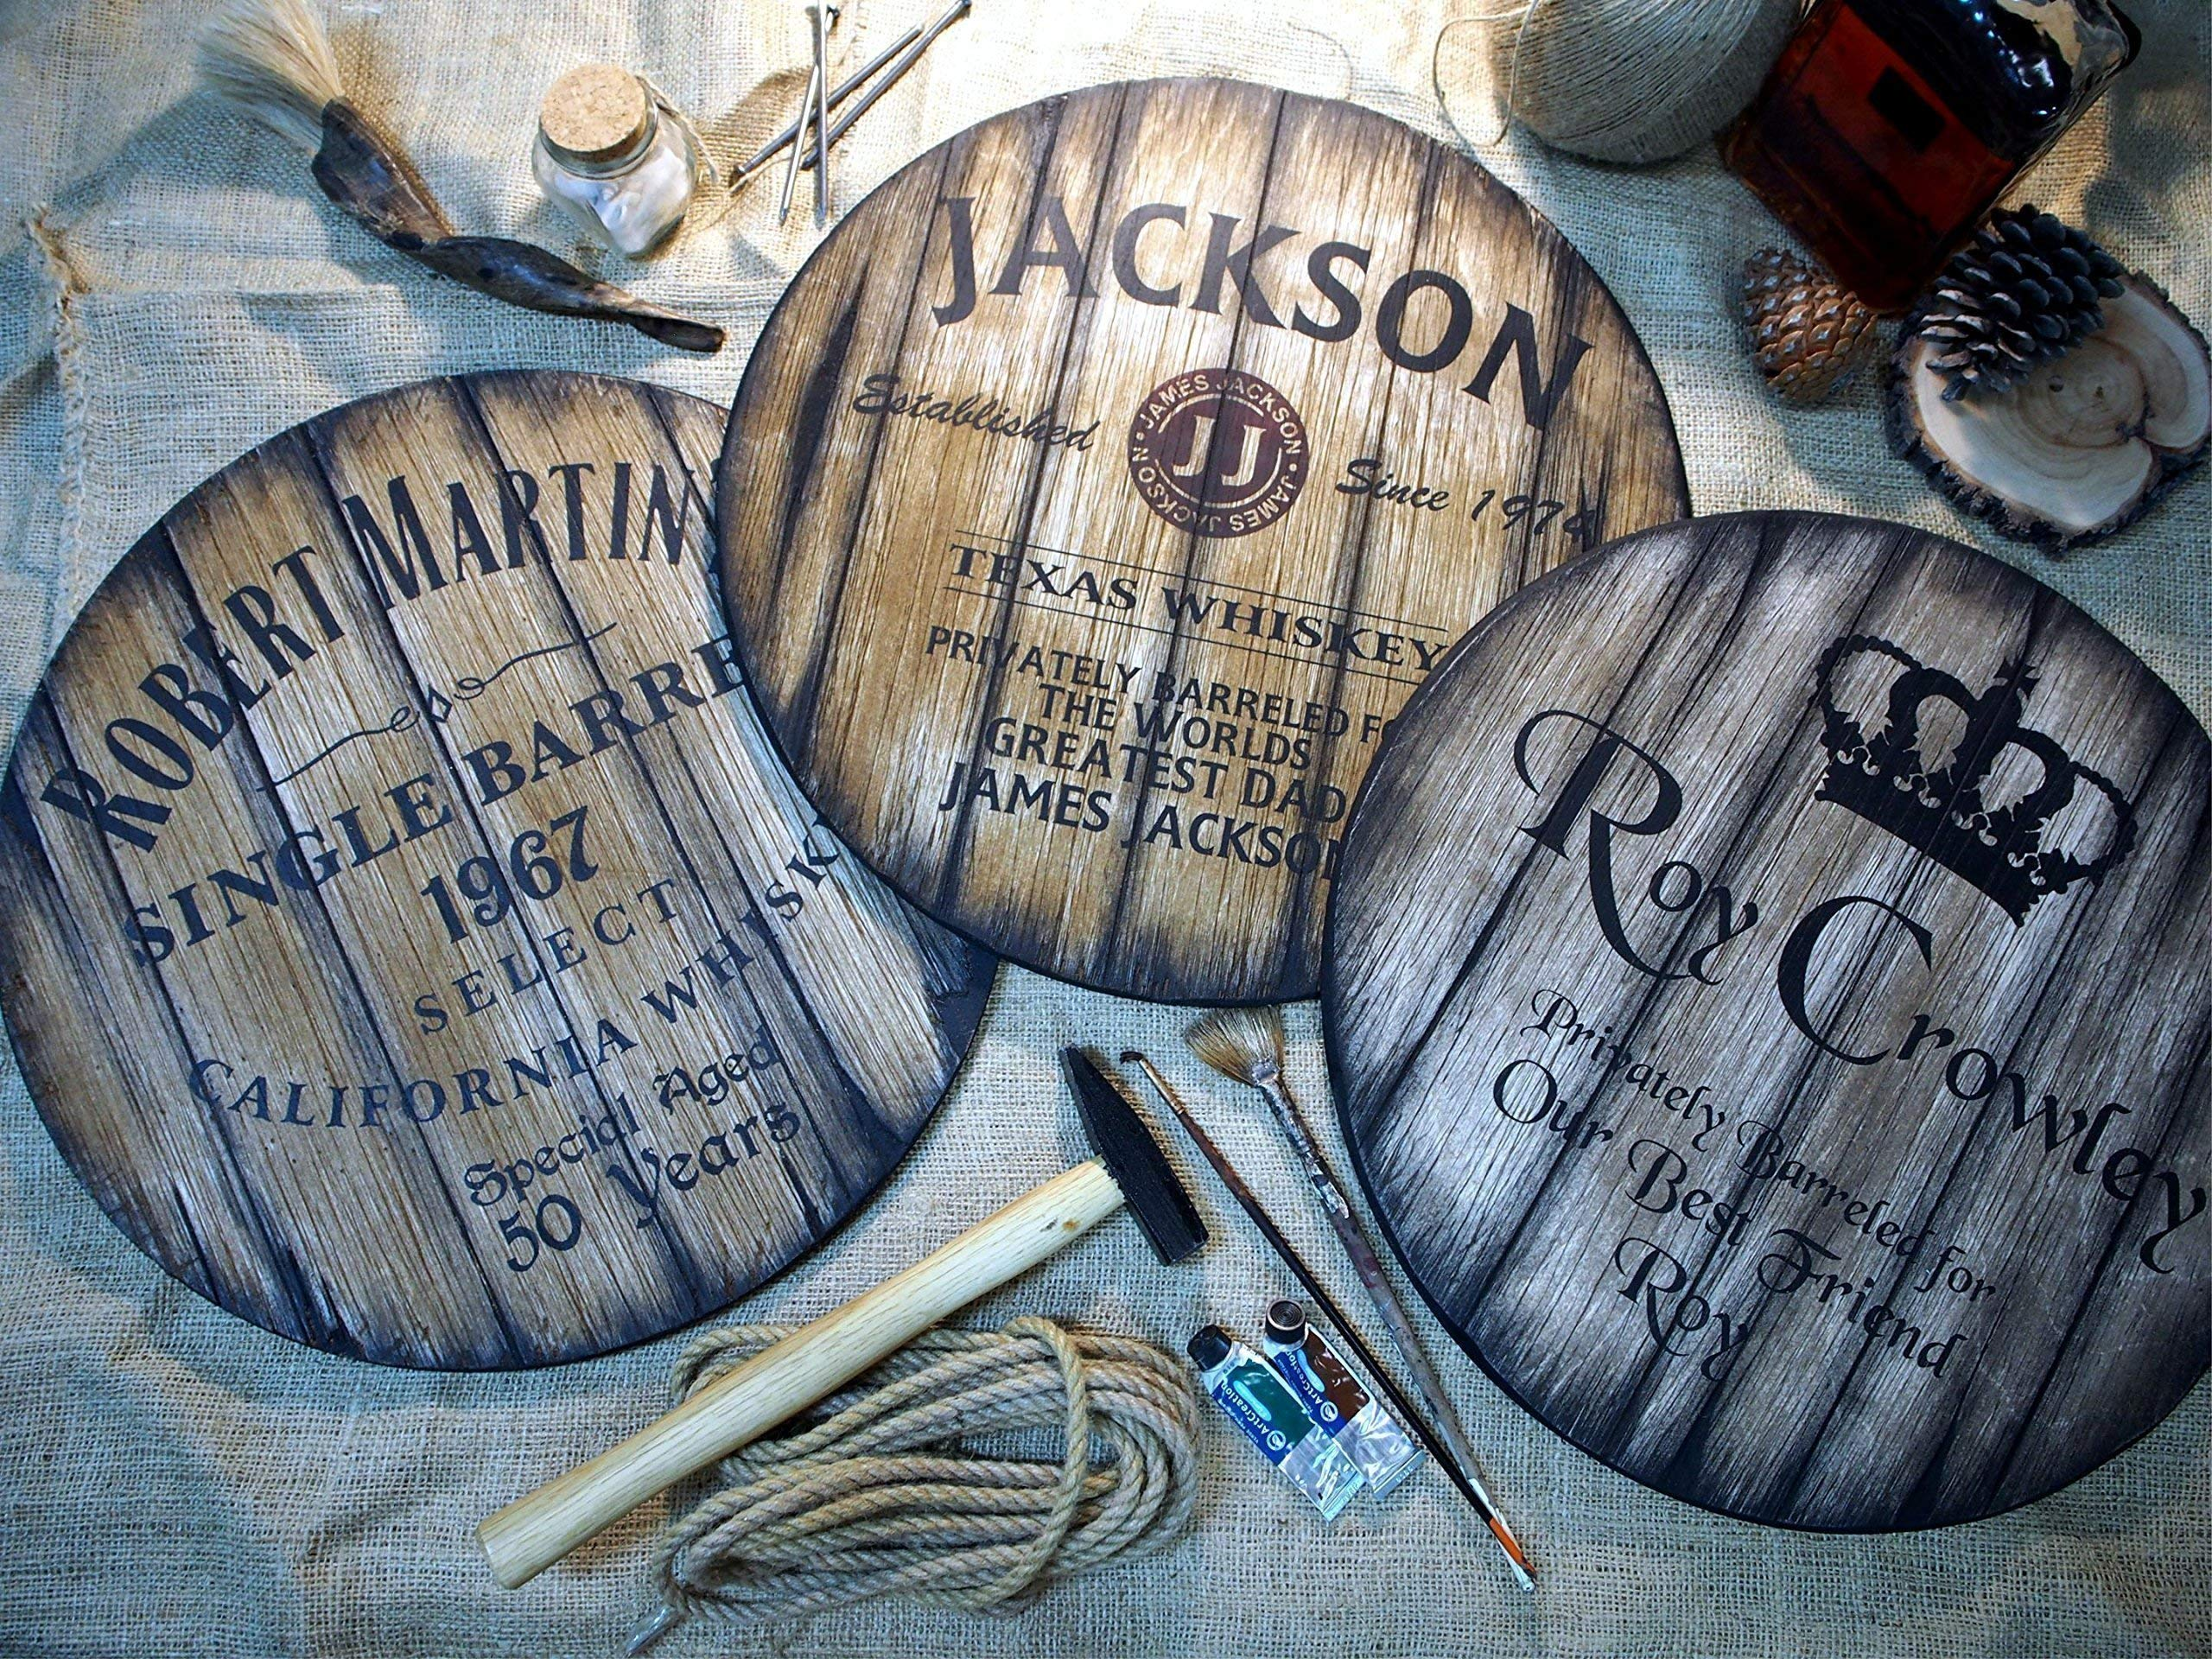 Custom sign inspired by whiskey barrel tops   Personalized Gifts for men   Rustic wall decor   Hand-painted theme on a worn out, distressed wood plaque   Home Bar, Man Cave decoration